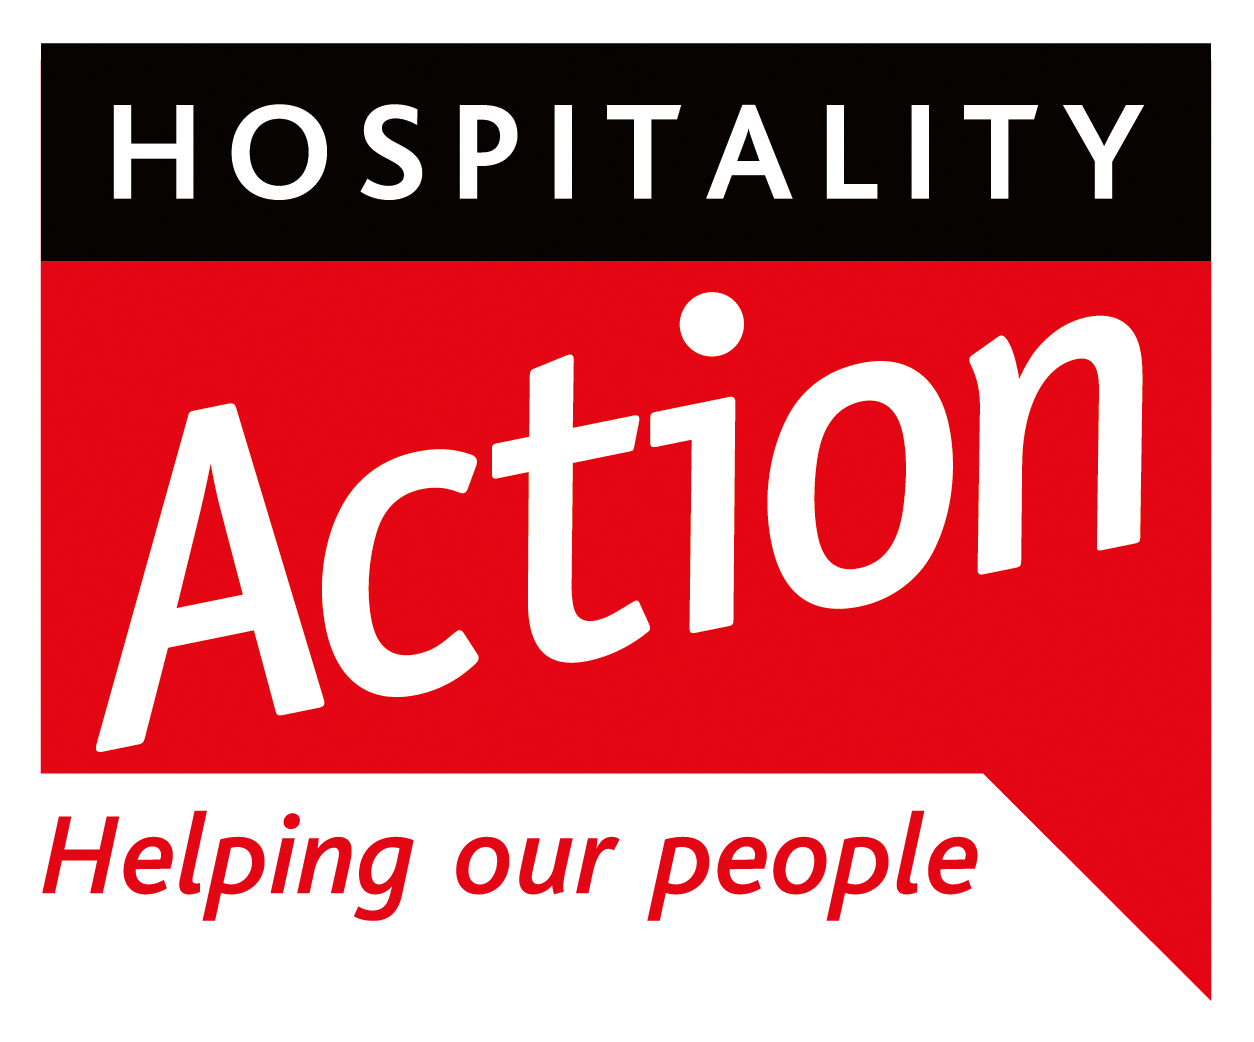 Hospitality Action Week 2014